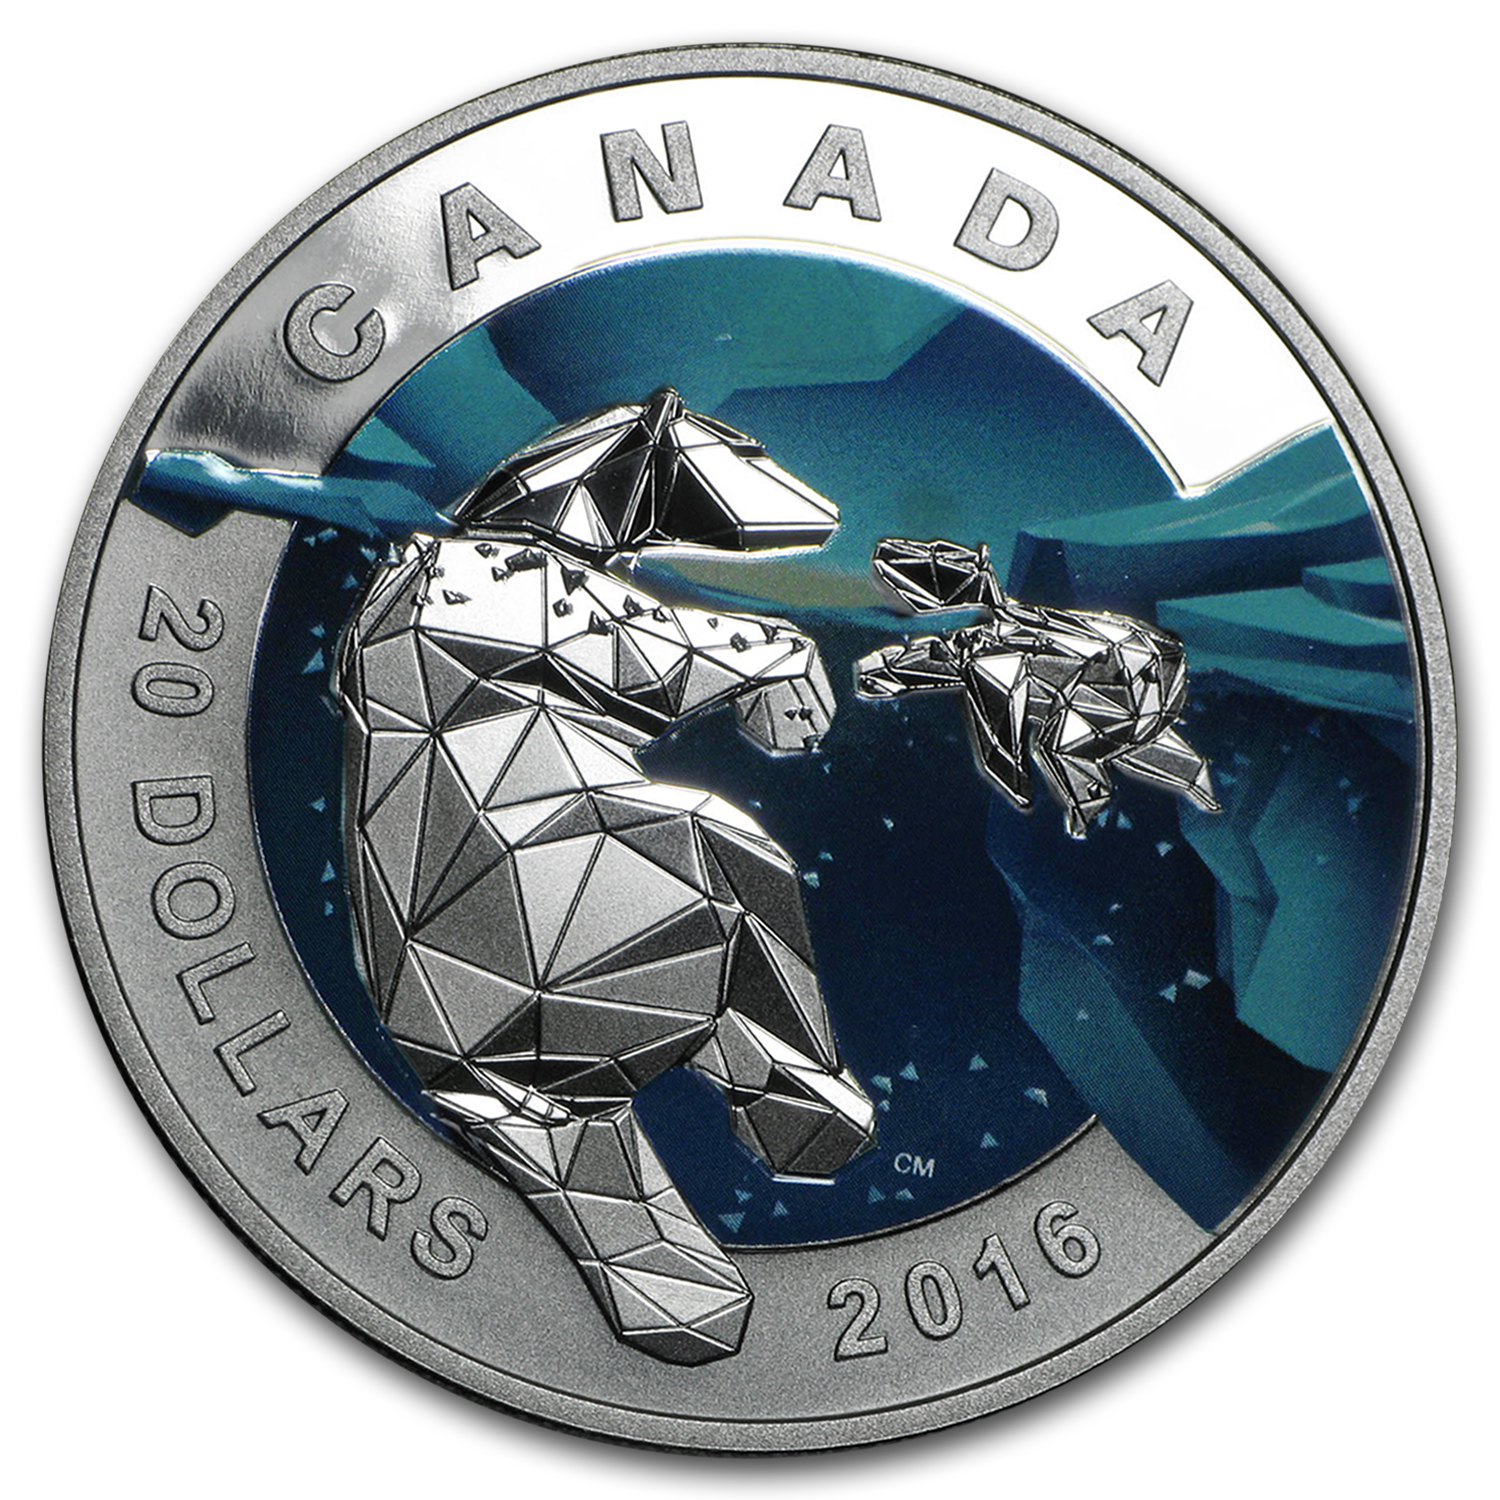 2016 Canada Silver 1 oz Silver Geometry in Art: The Polar Bear